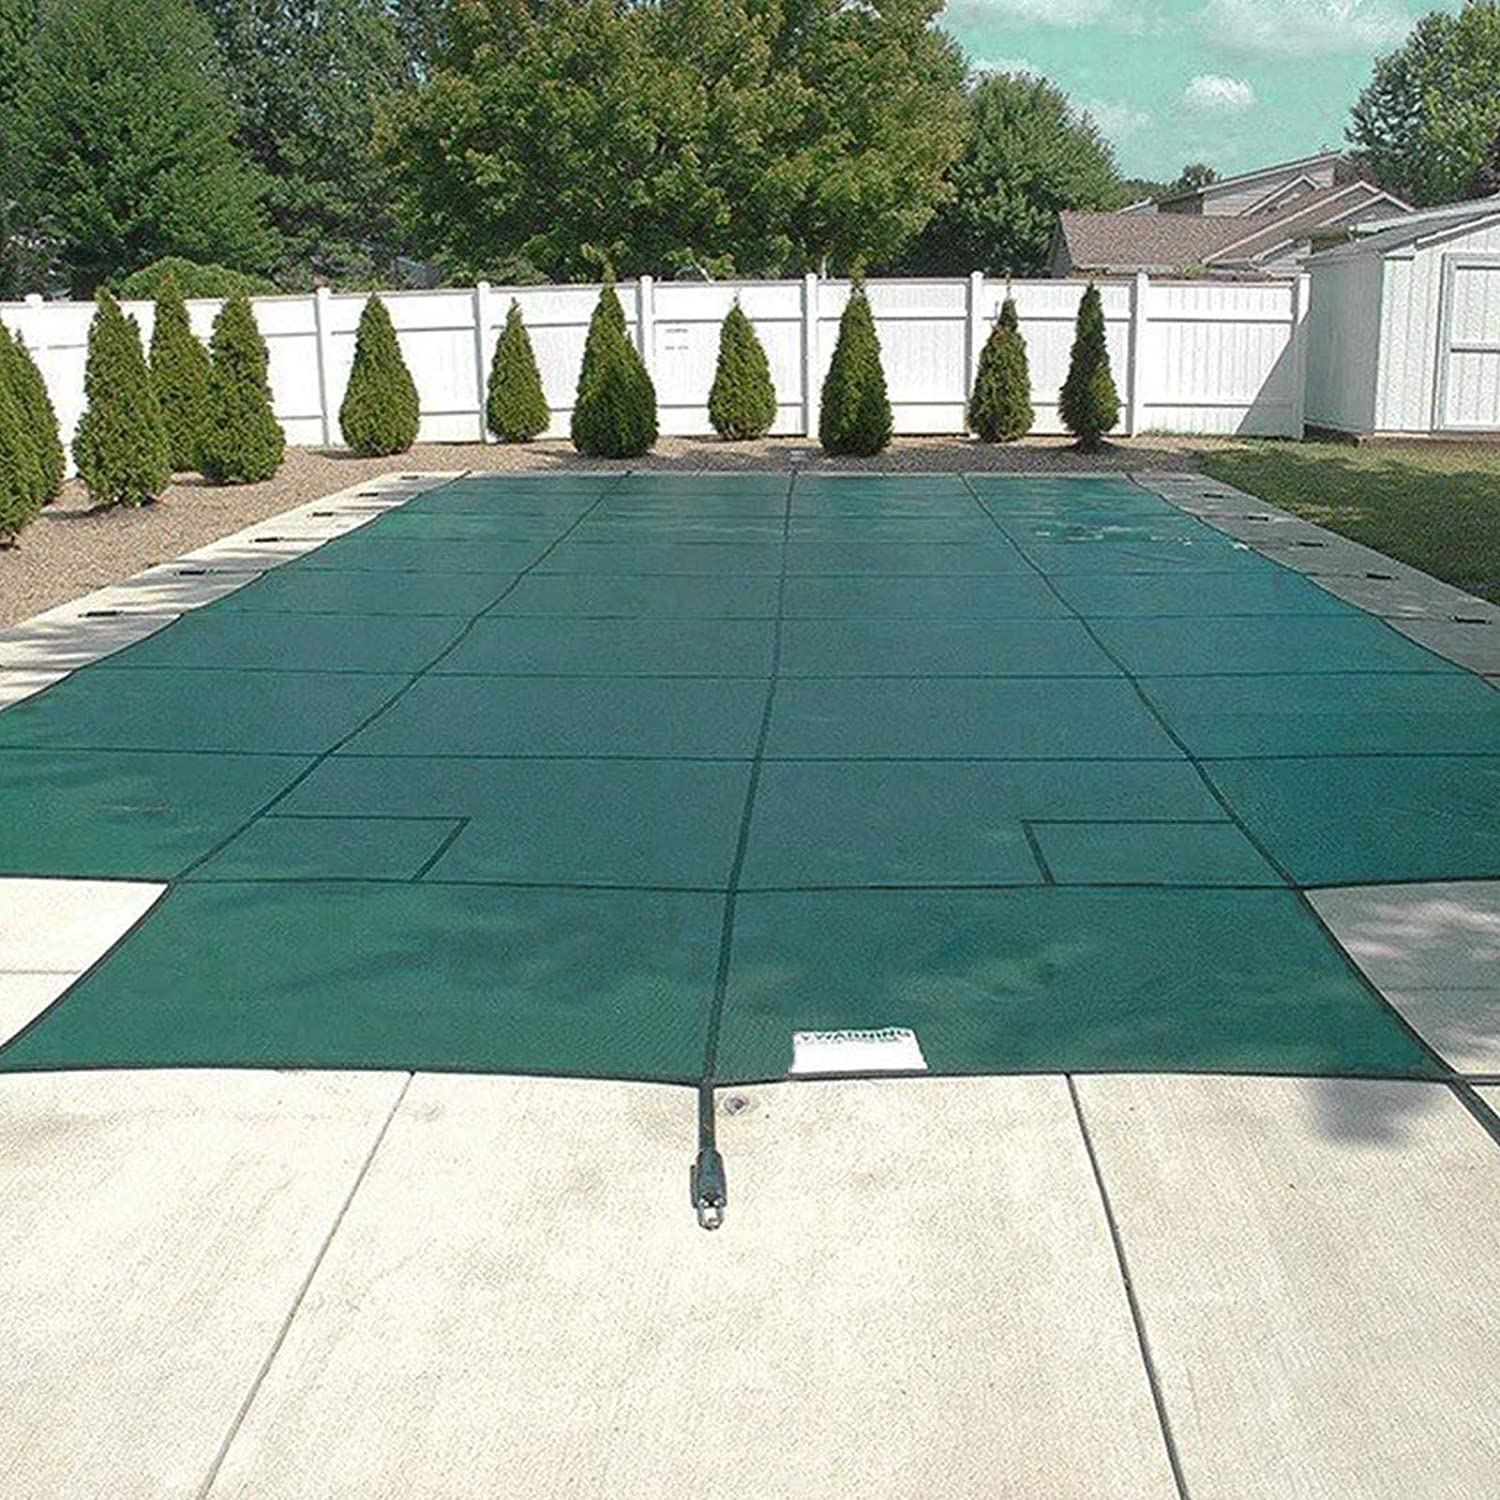 Happybuy Pool Safety Cover Fits 20x40ft Rectangle Inground Safety Pool Cover Green Mesh